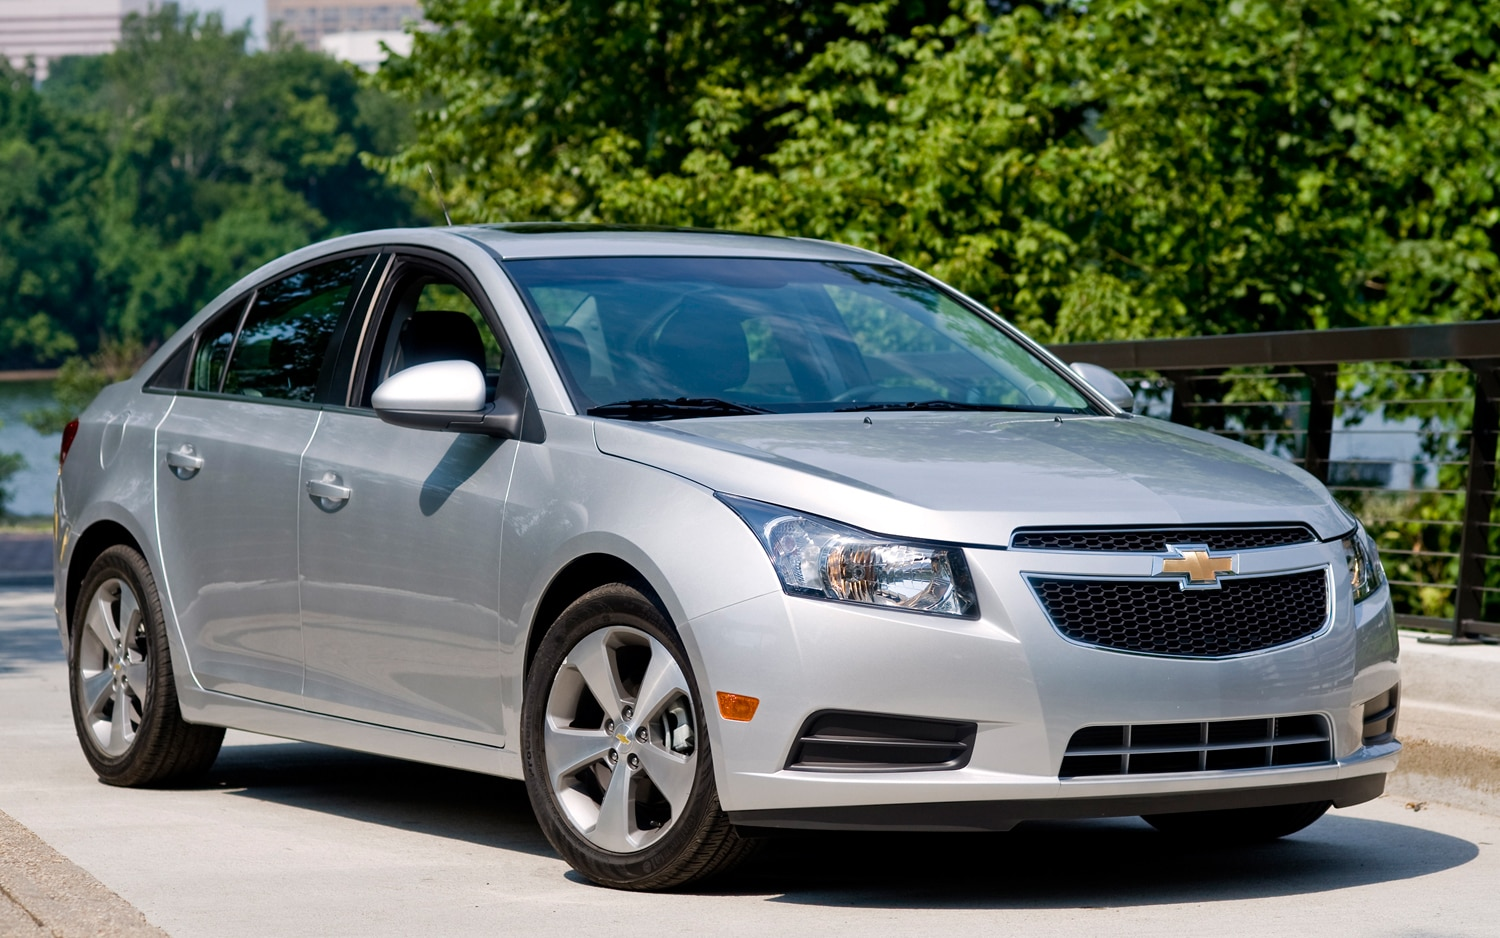 2011 Chevrolet Cruze Ltz Front Three Quarter1